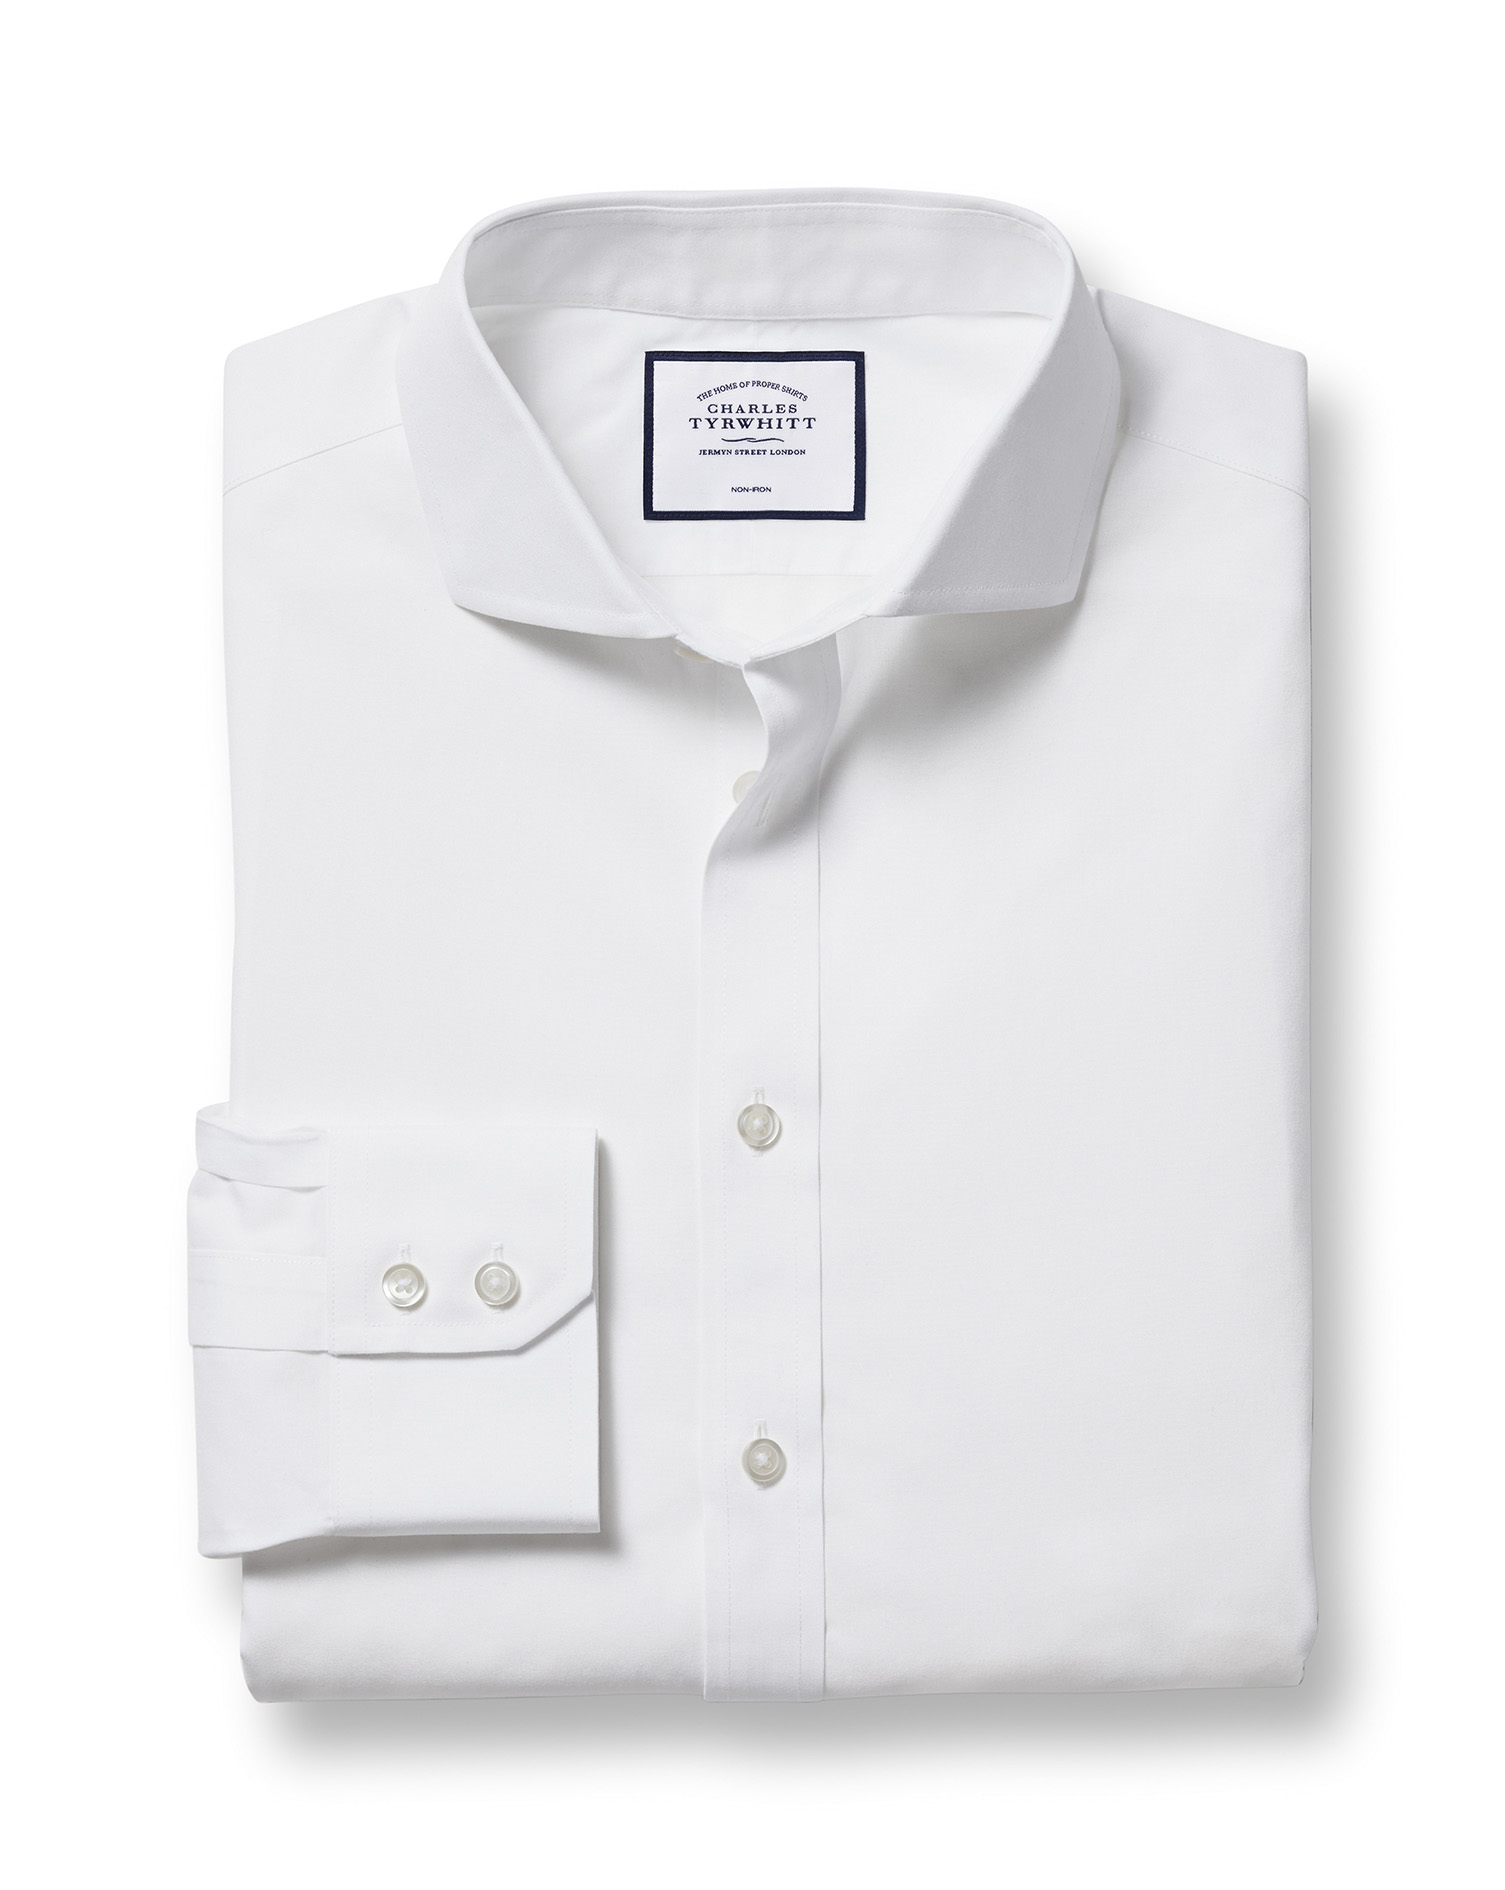 Extra Slim Fit White Non-Iron Poplin Cutaway Collar Cotton Formal Shirt Double Cuff Size 17/36 by Ch